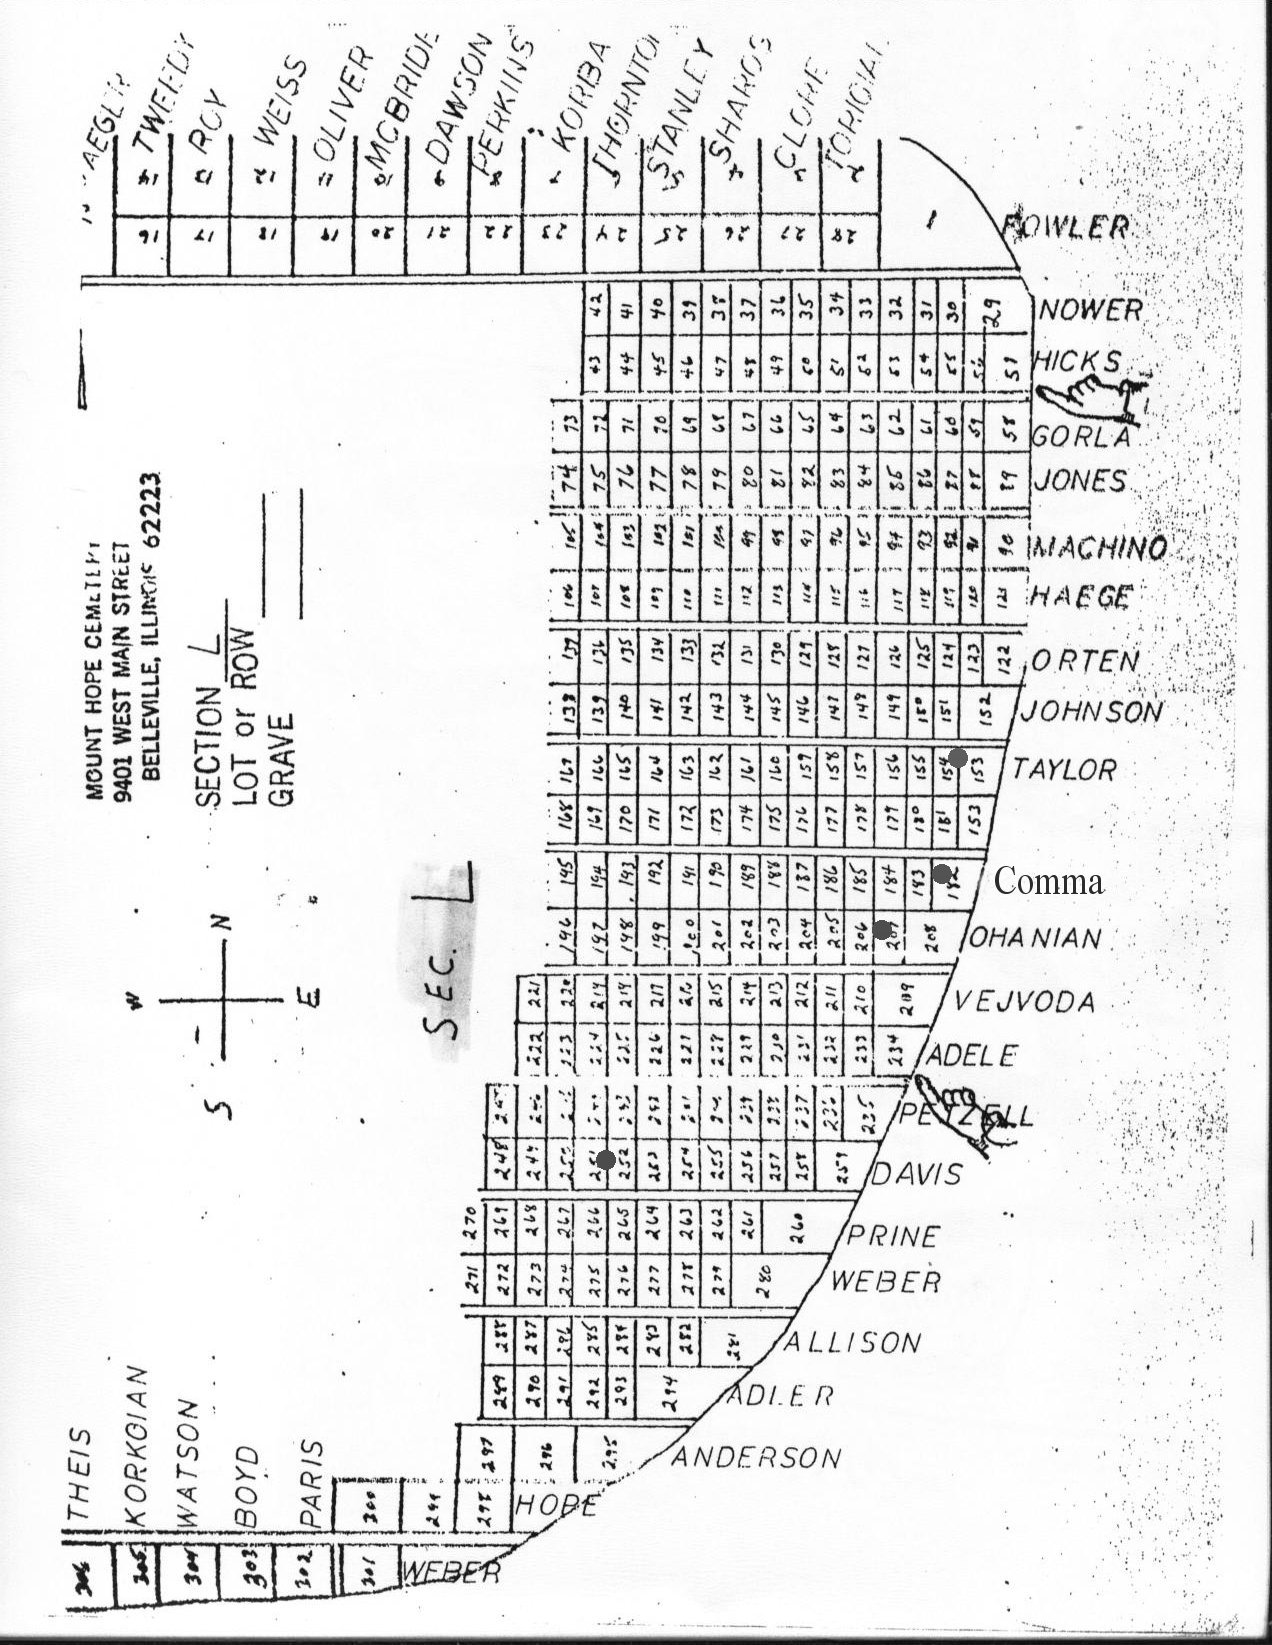 Mt Hope Cemetery St Clair County Genealogical Society 134 F Head Engine Diagram Map Overview Section A B C D E G Hbig Hlittle I